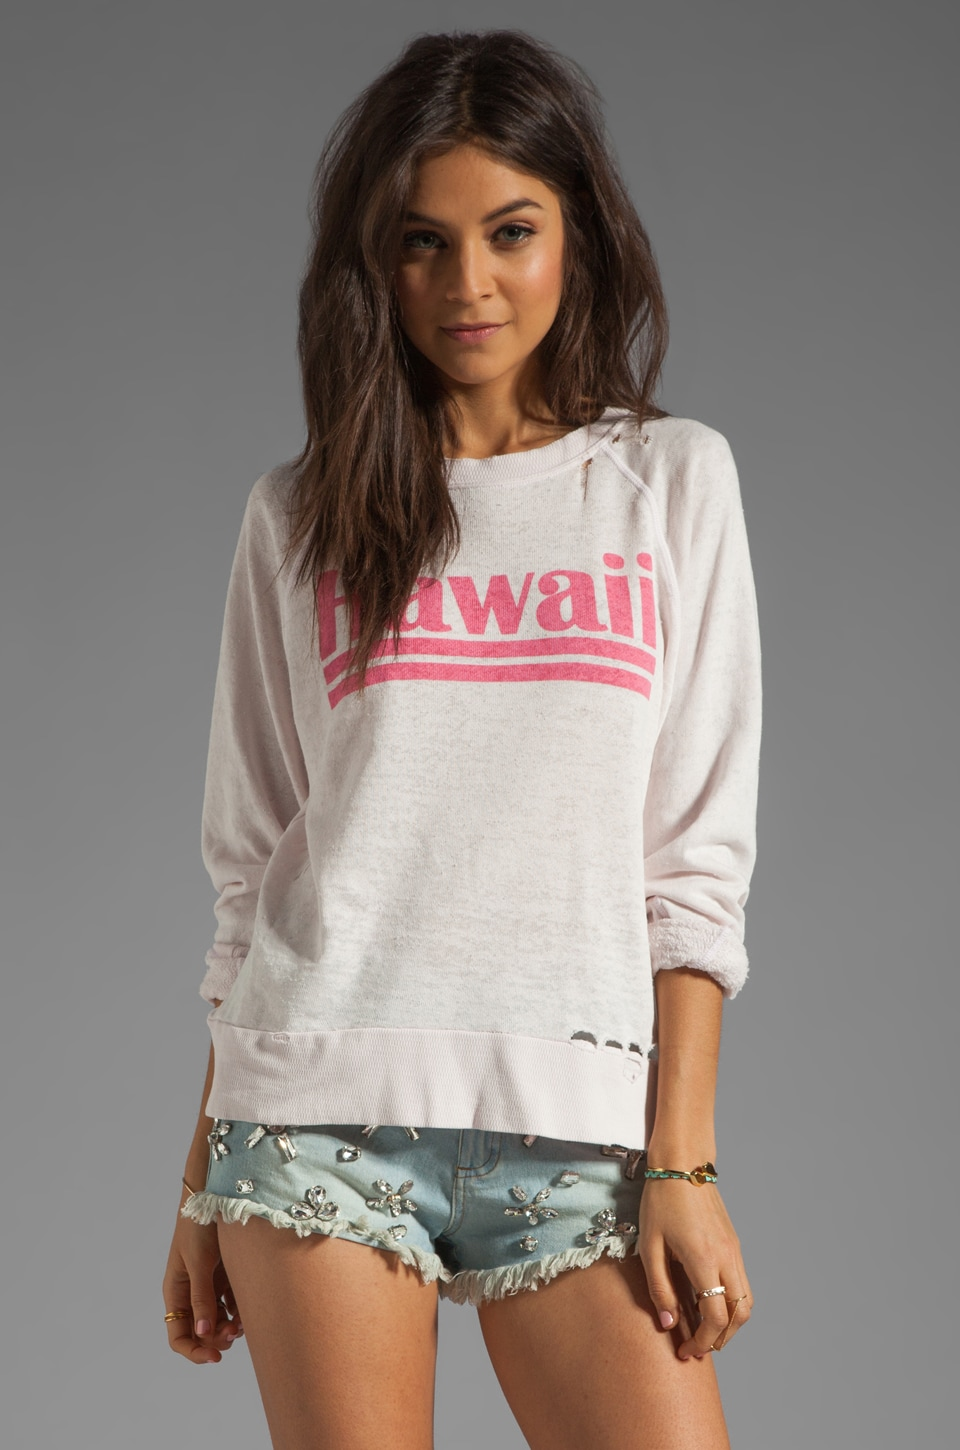 Wildfox Couture Hawaiian Dream Destroyed Sweater in Strawberry Ice